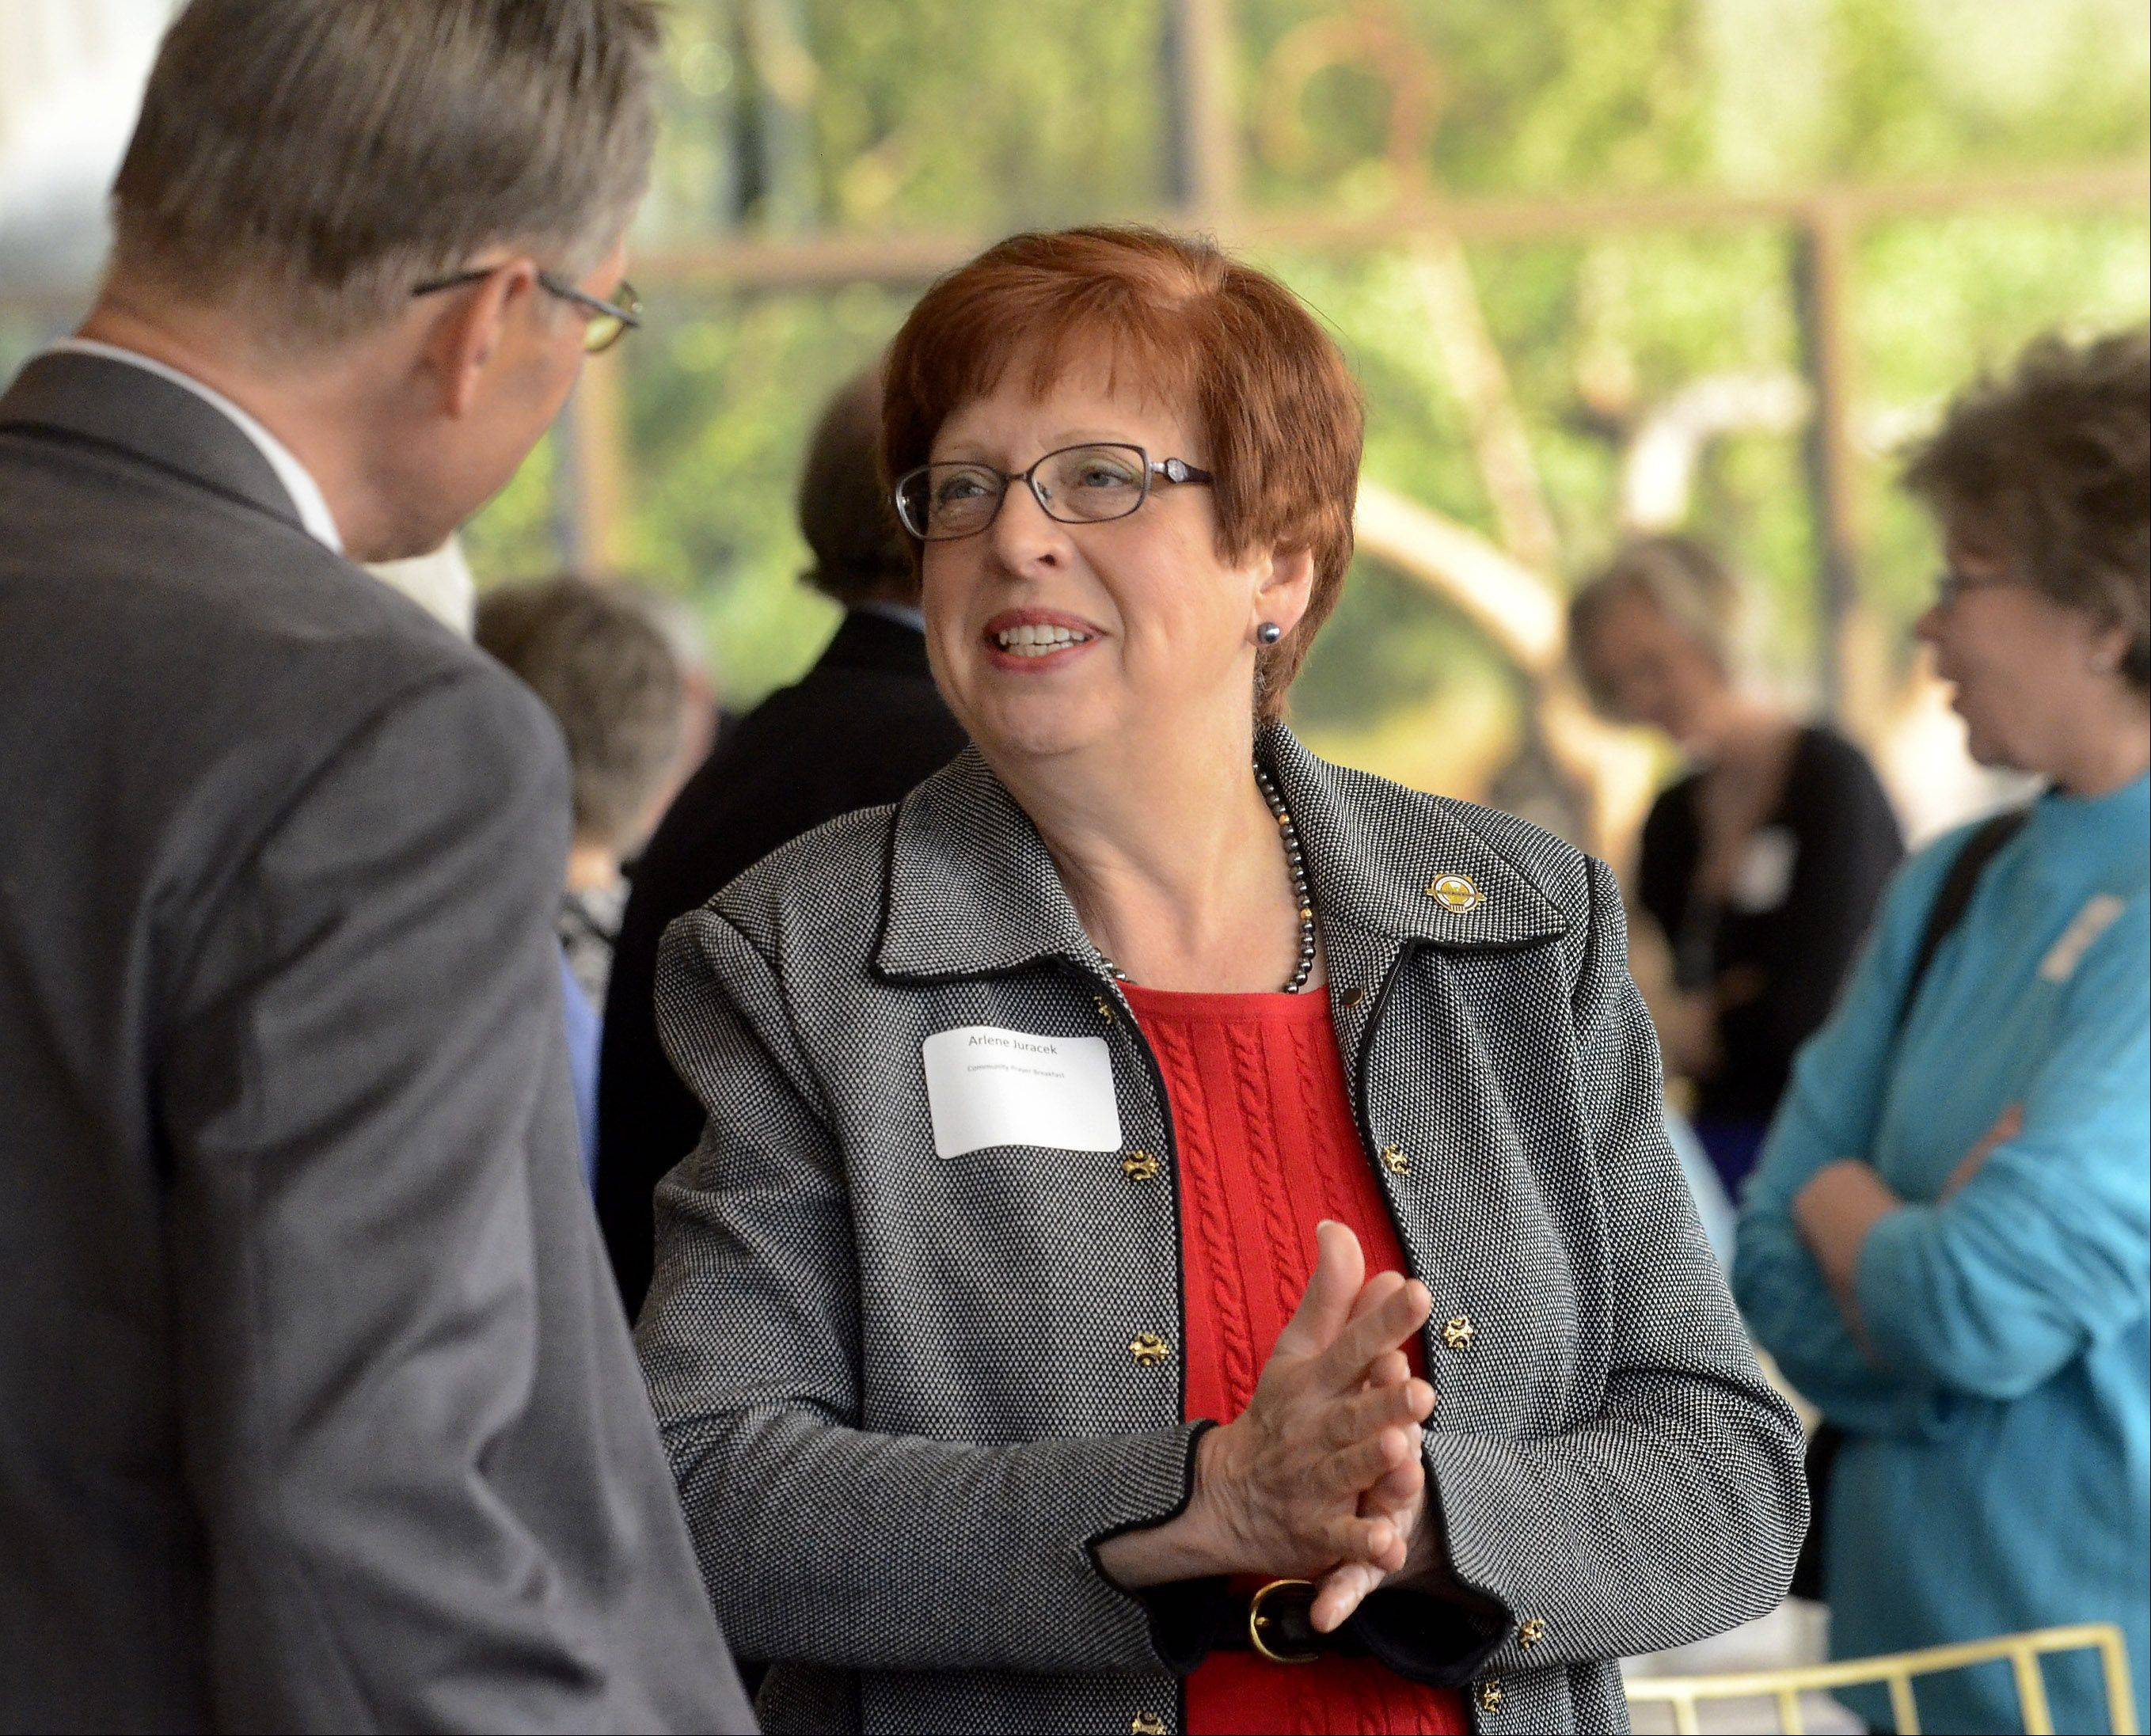 Arlene Juracek, at the village's recent community prayer breakfast, will make economic development a priority.